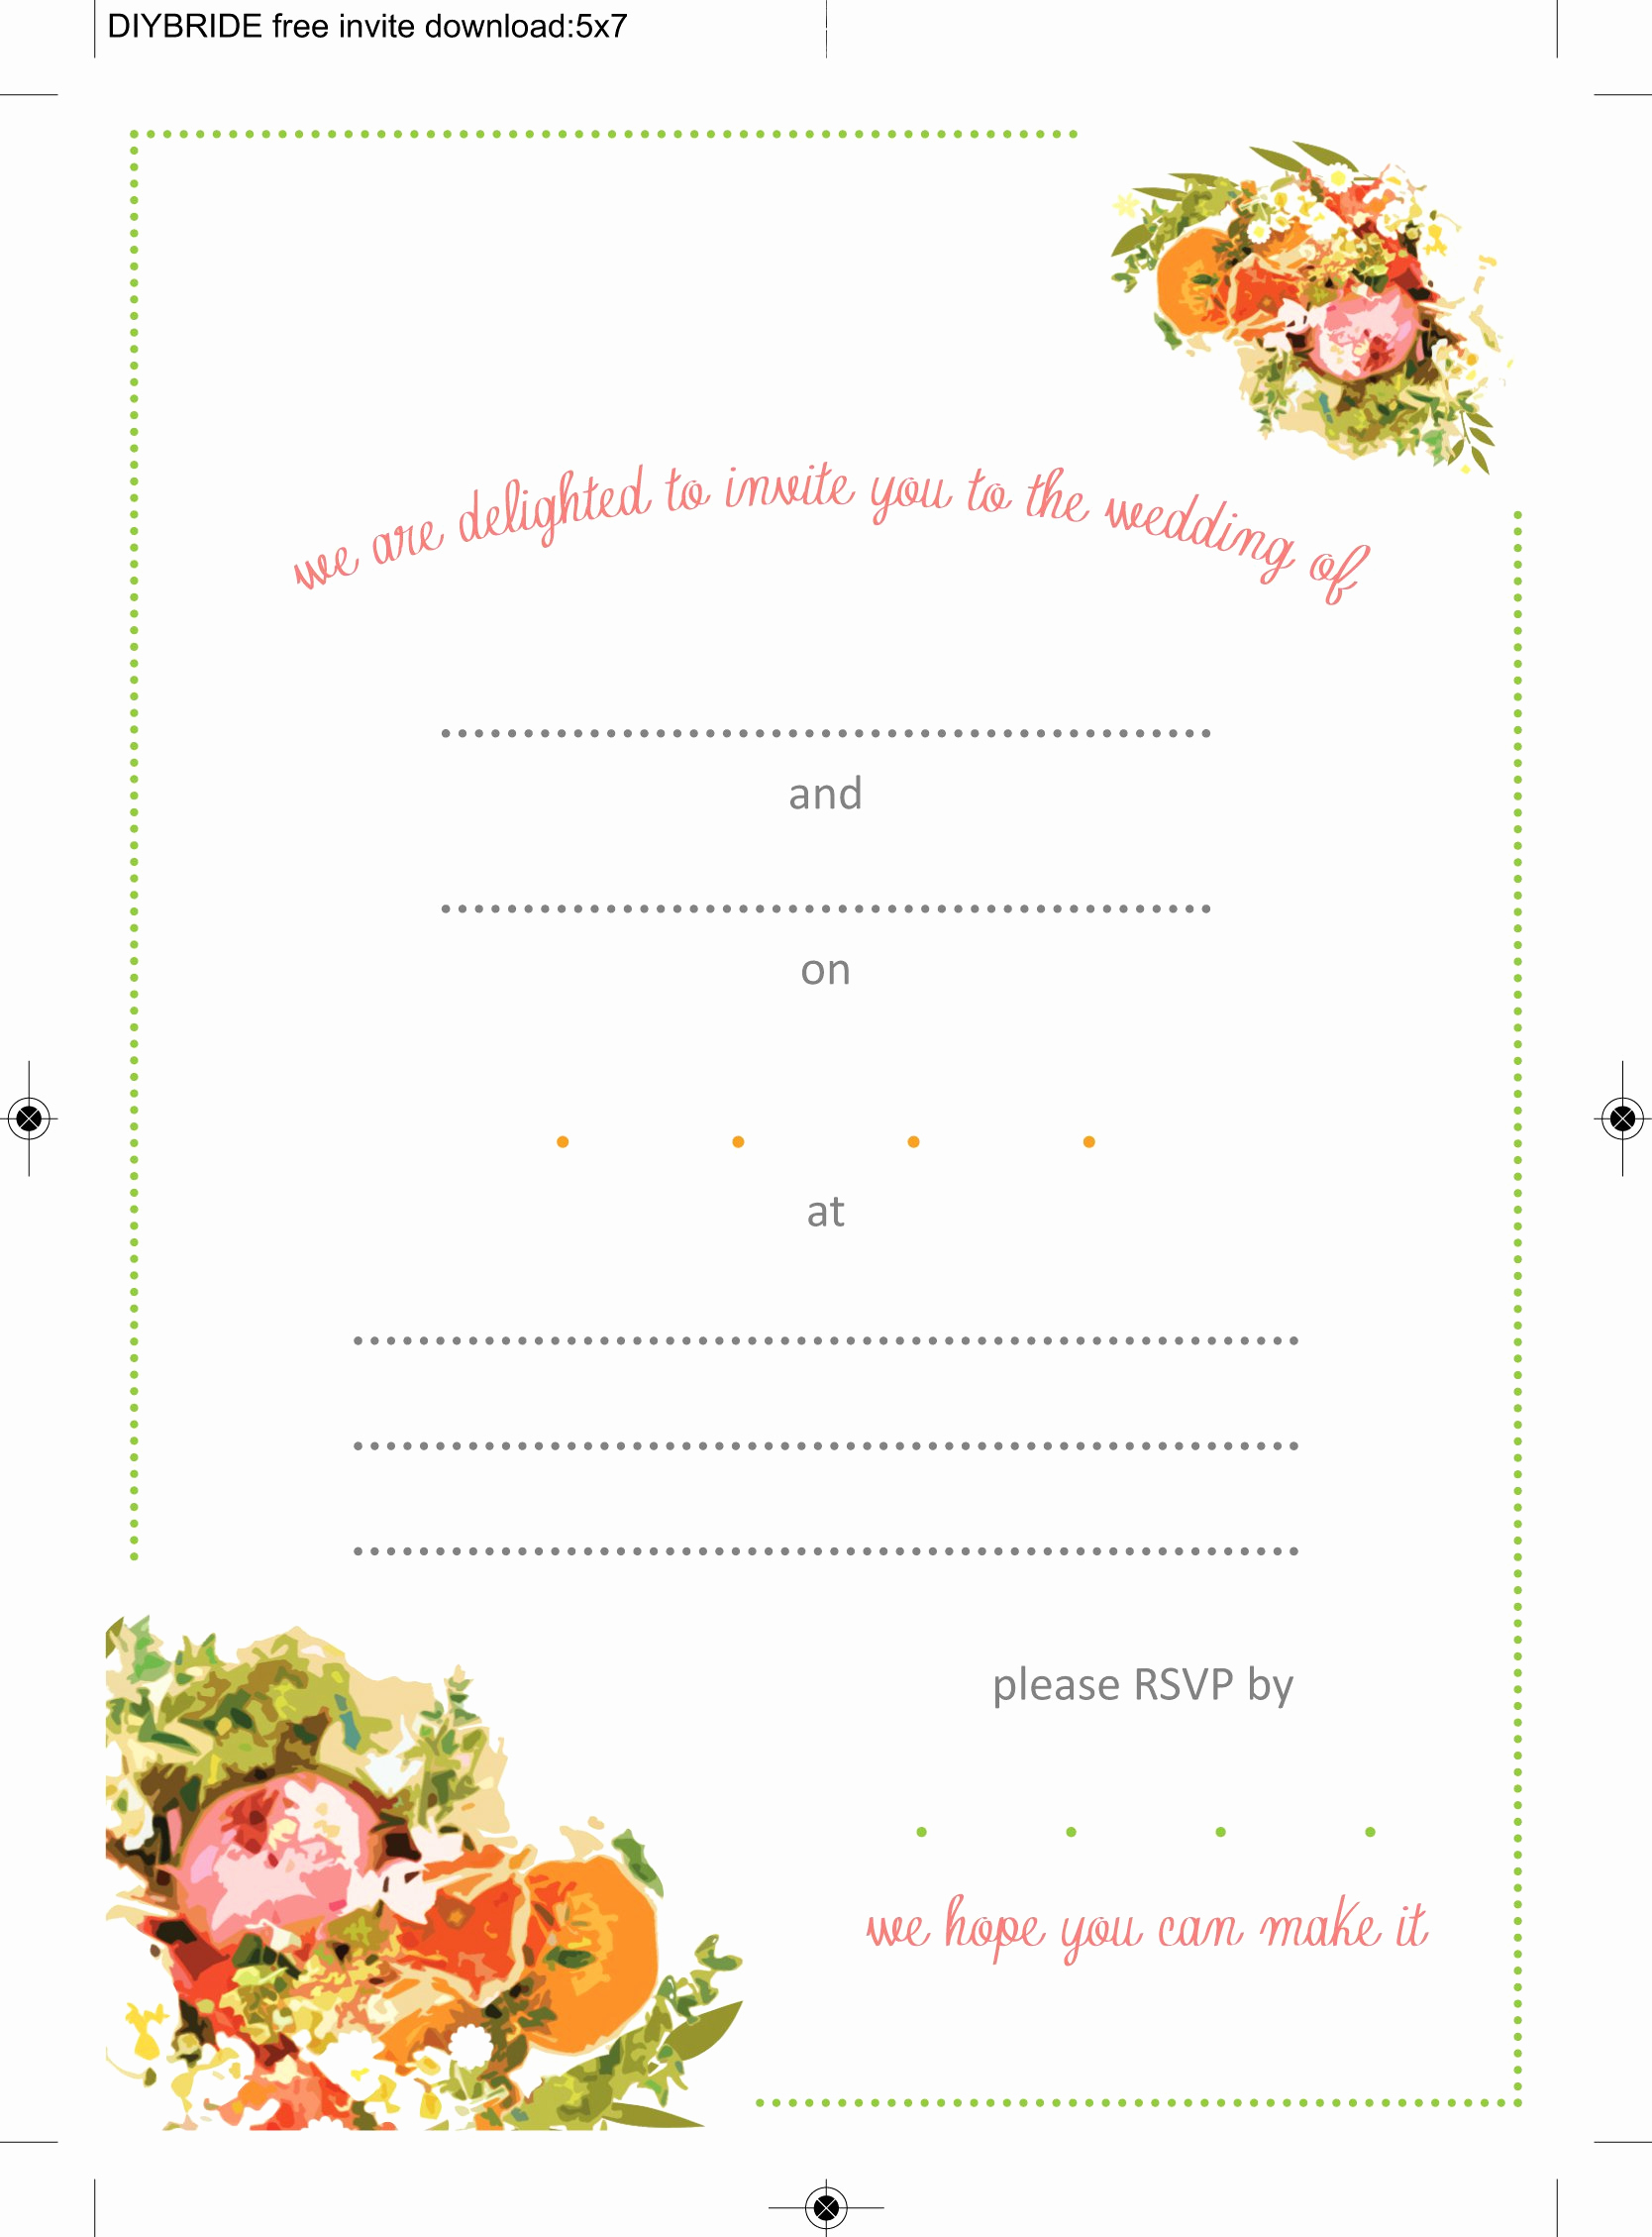 Free Wedding Invitation Printable Templates Fresh Wedding Invitation Templates that are Cute and Easy to